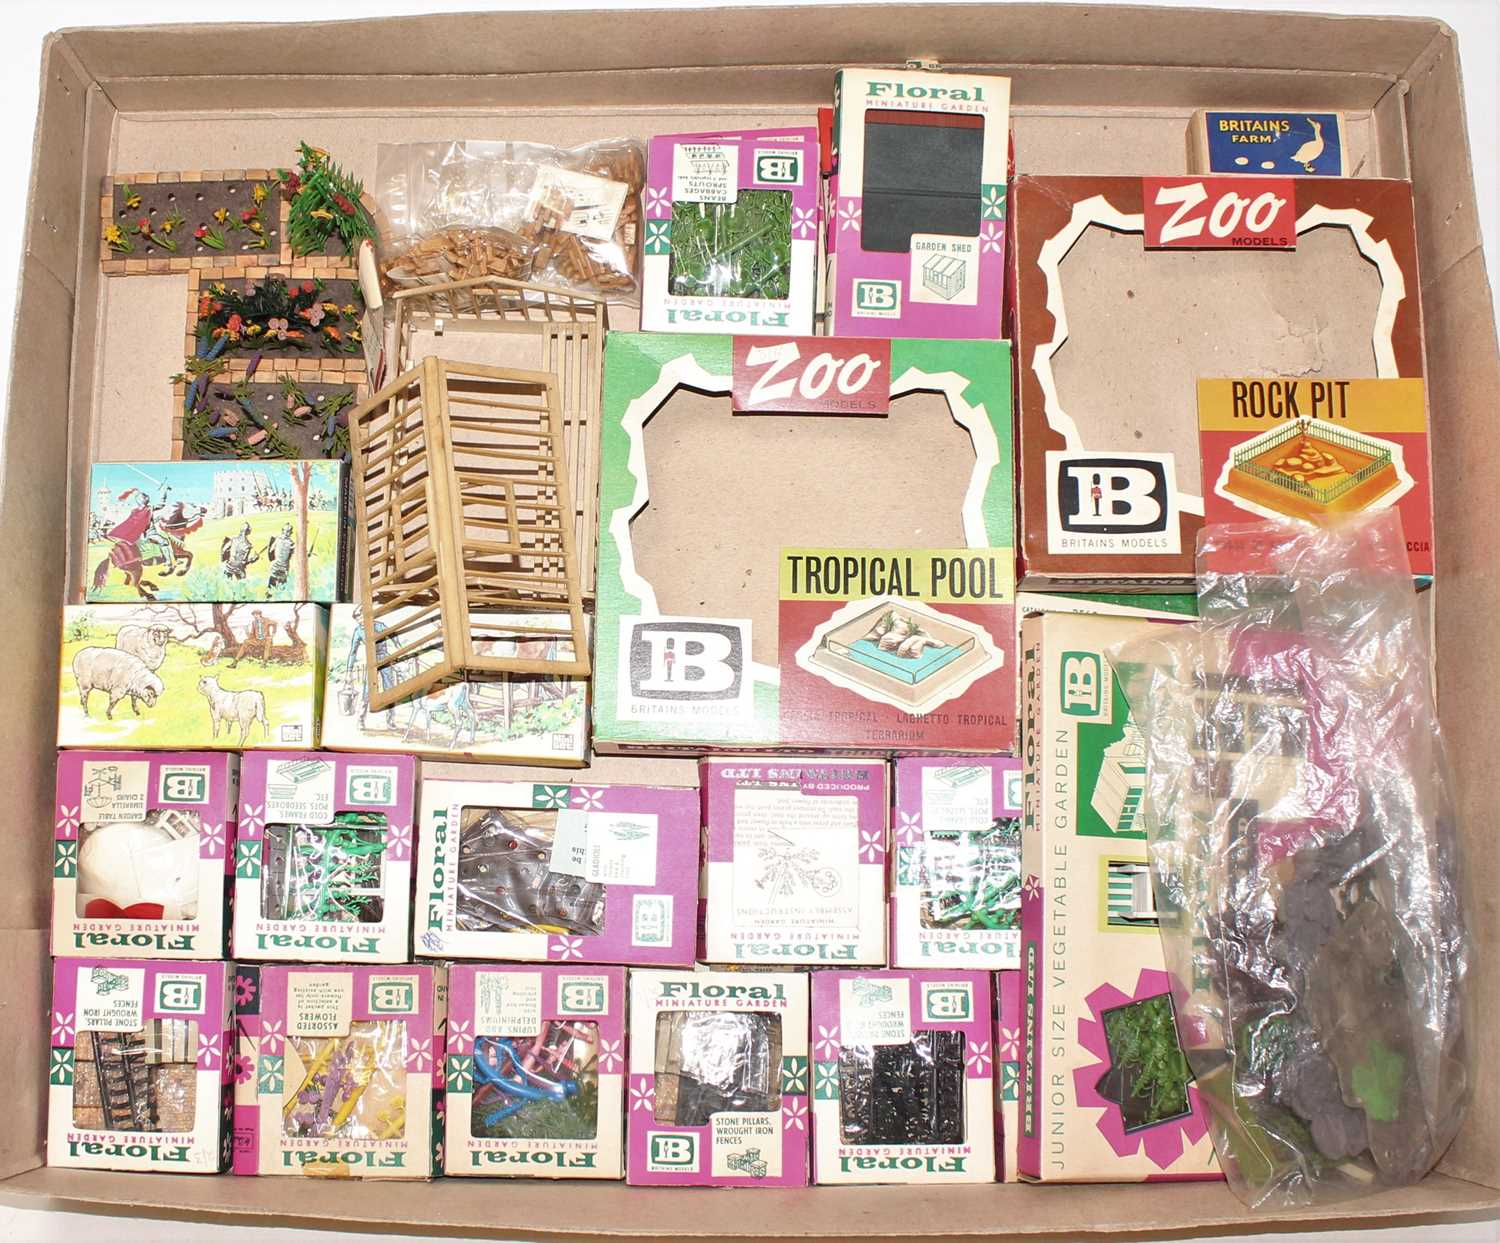 A single owner collection of various Britains floral garden miniatures, mini gift sets and zoo - Image 4 of 4